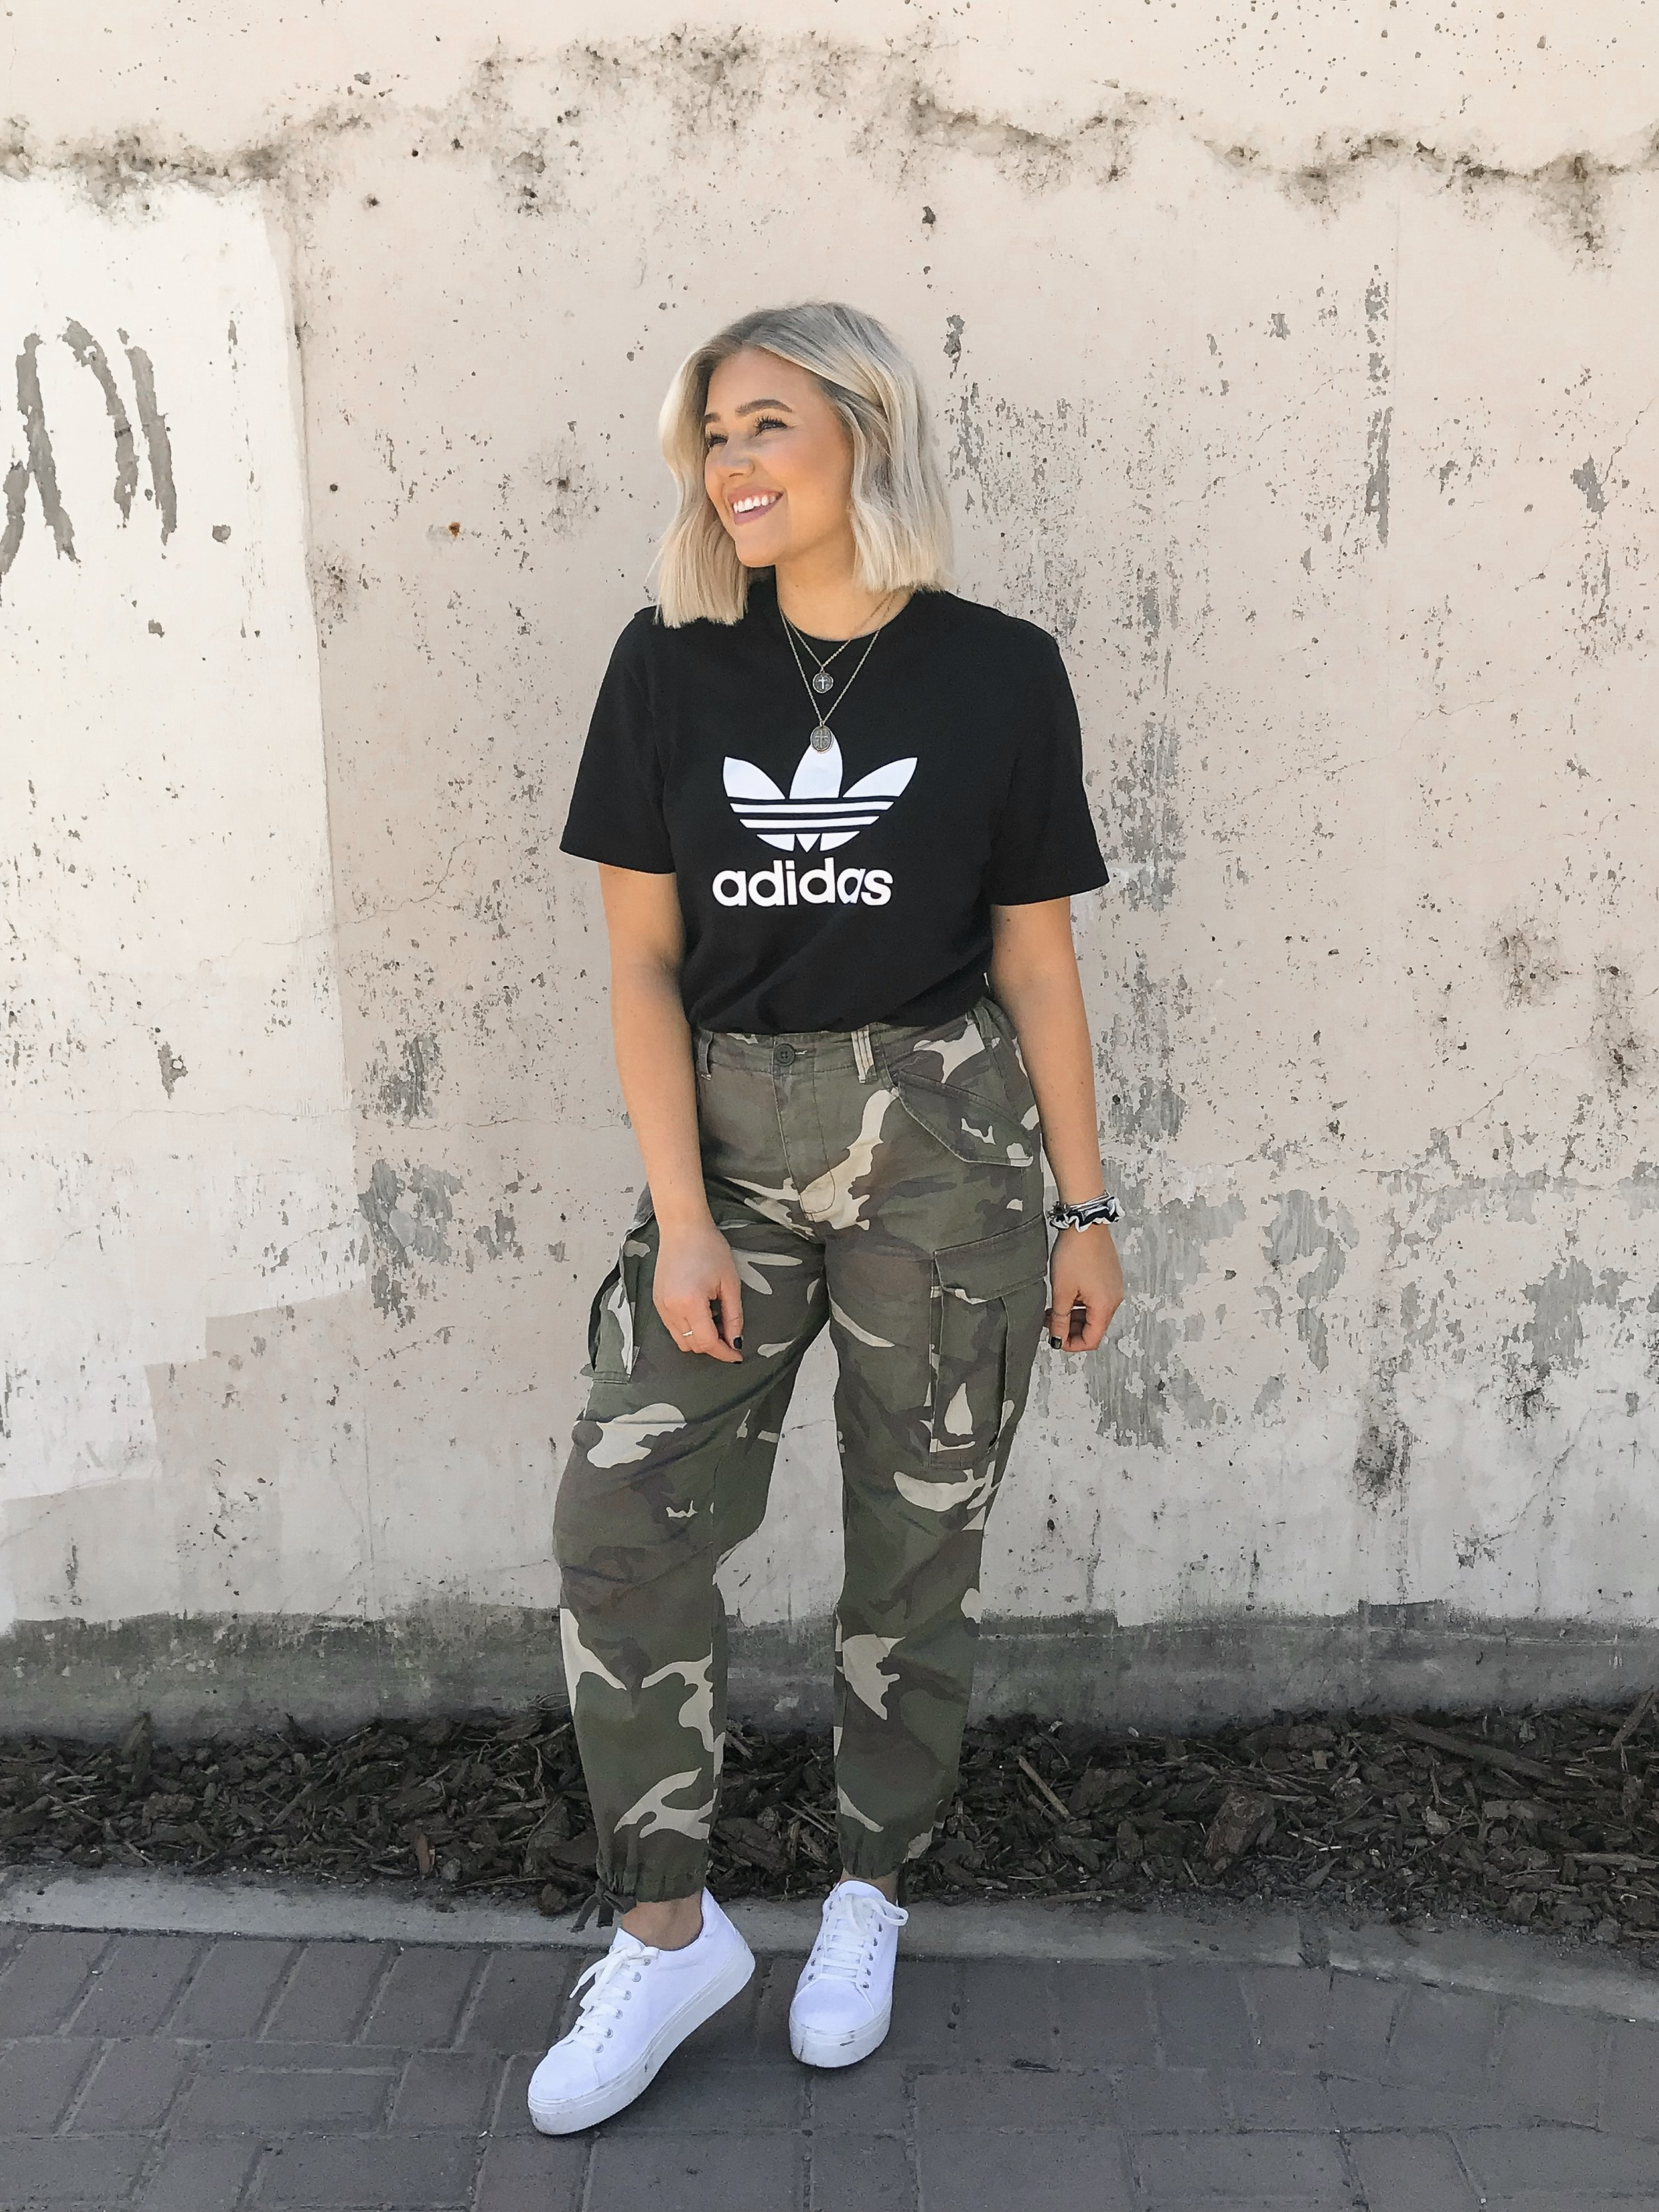 Affordable Tops For Fall - Bre Sheppard 2.JPG